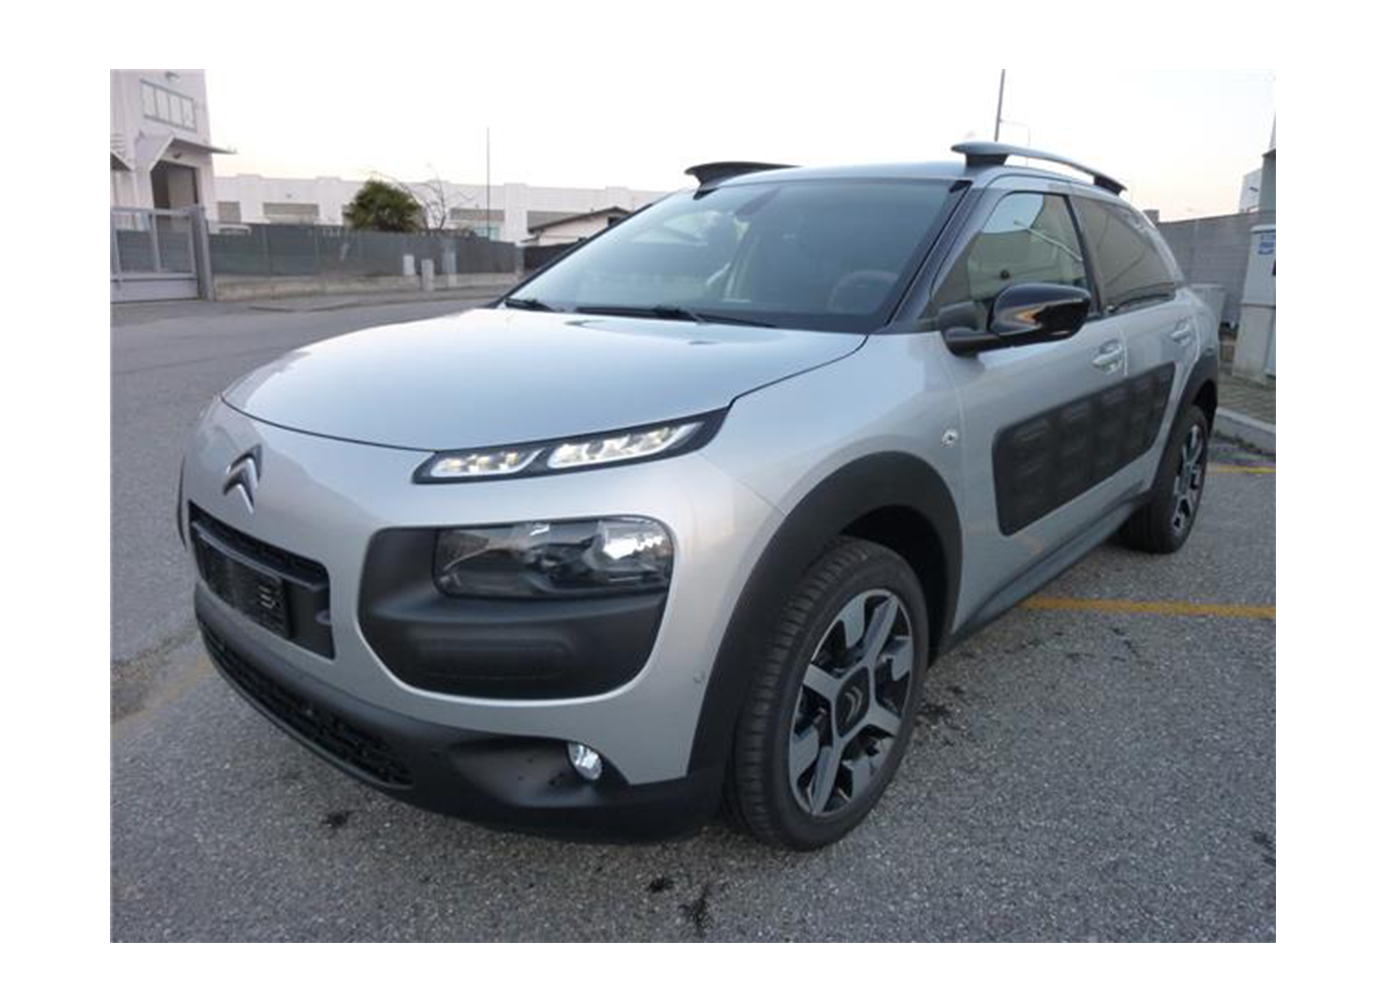 citroen c4 cactus bluehdi 100 feel edition silver grey km0 a soli 14850 su miacar kcfty. Black Bedroom Furniture Sets. Home Design Ideas